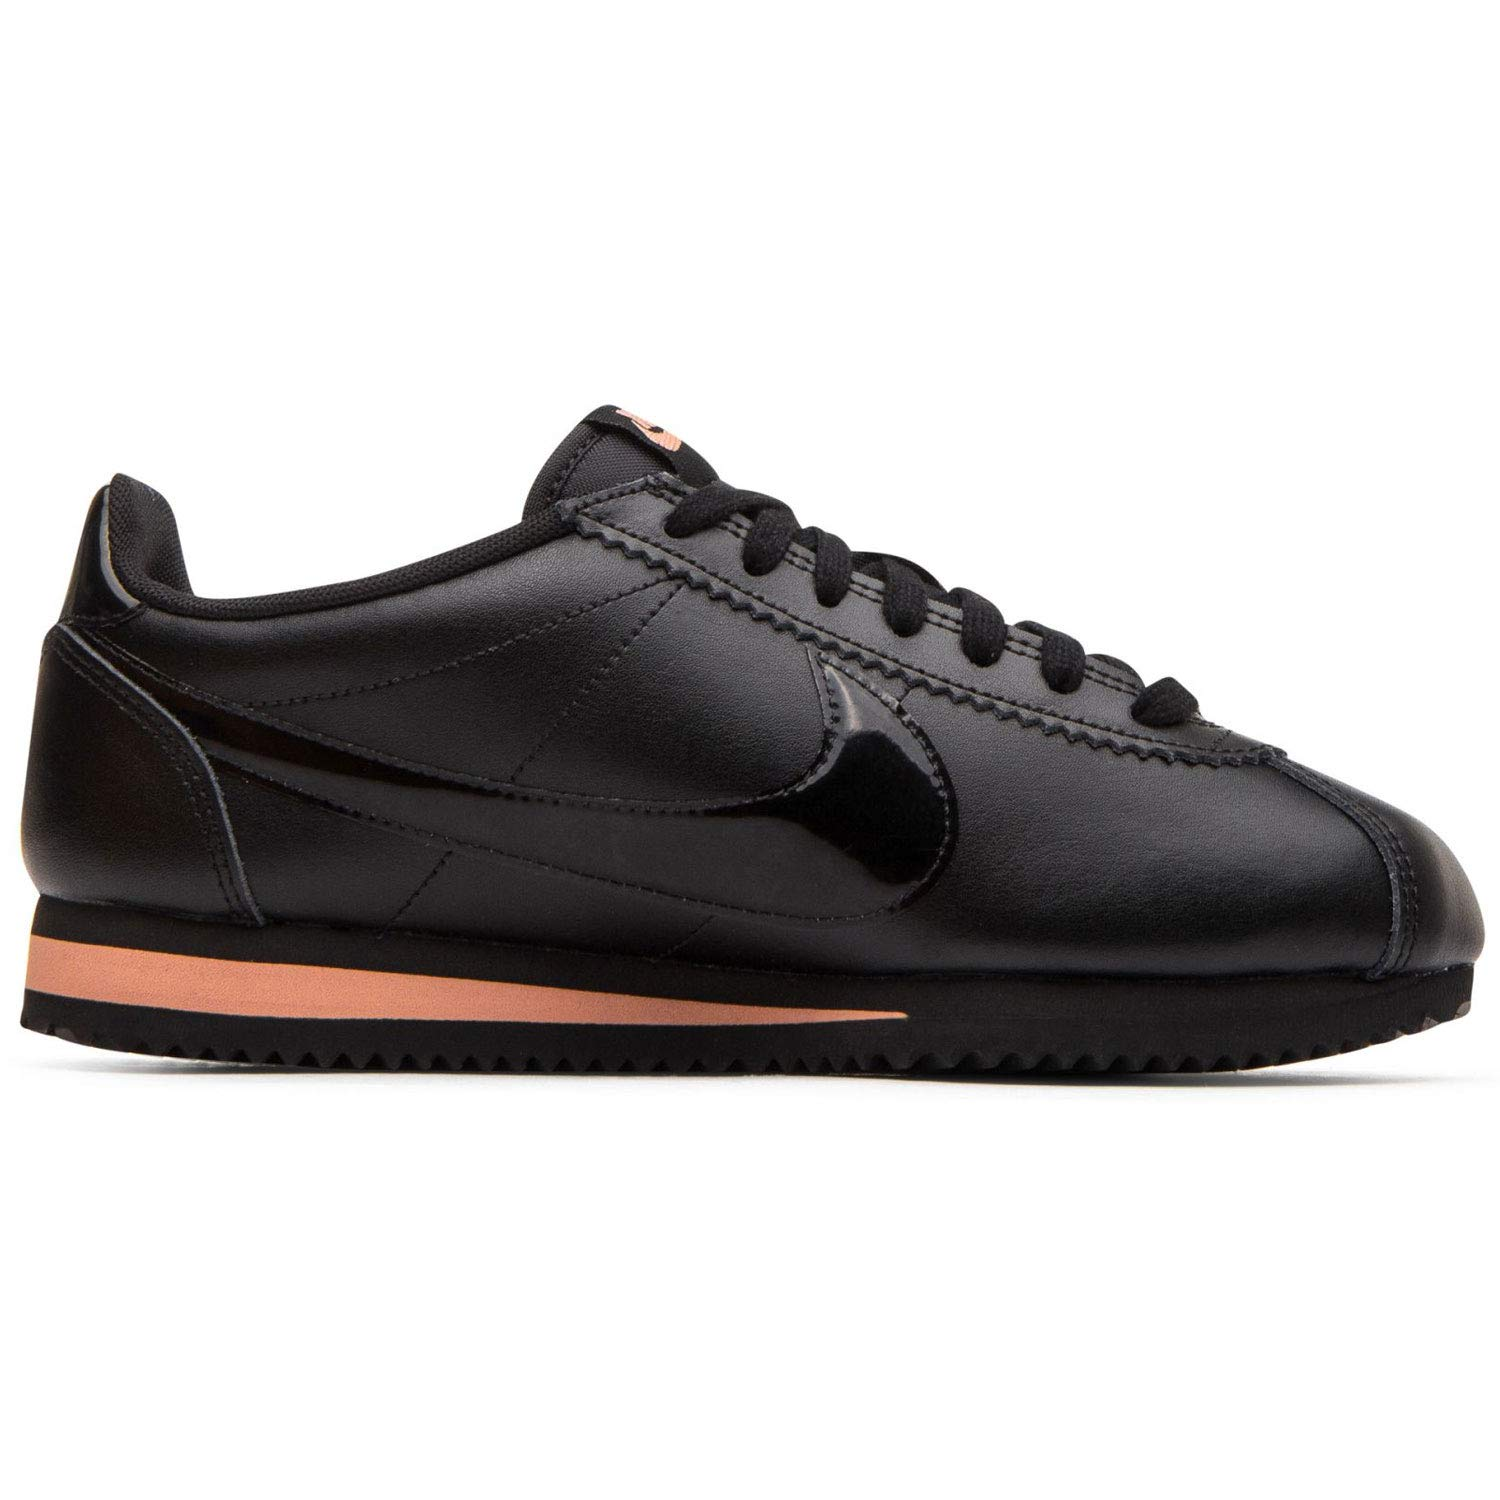 detailed look e9792 705a8 Nike Women's Classic Cortez Premium